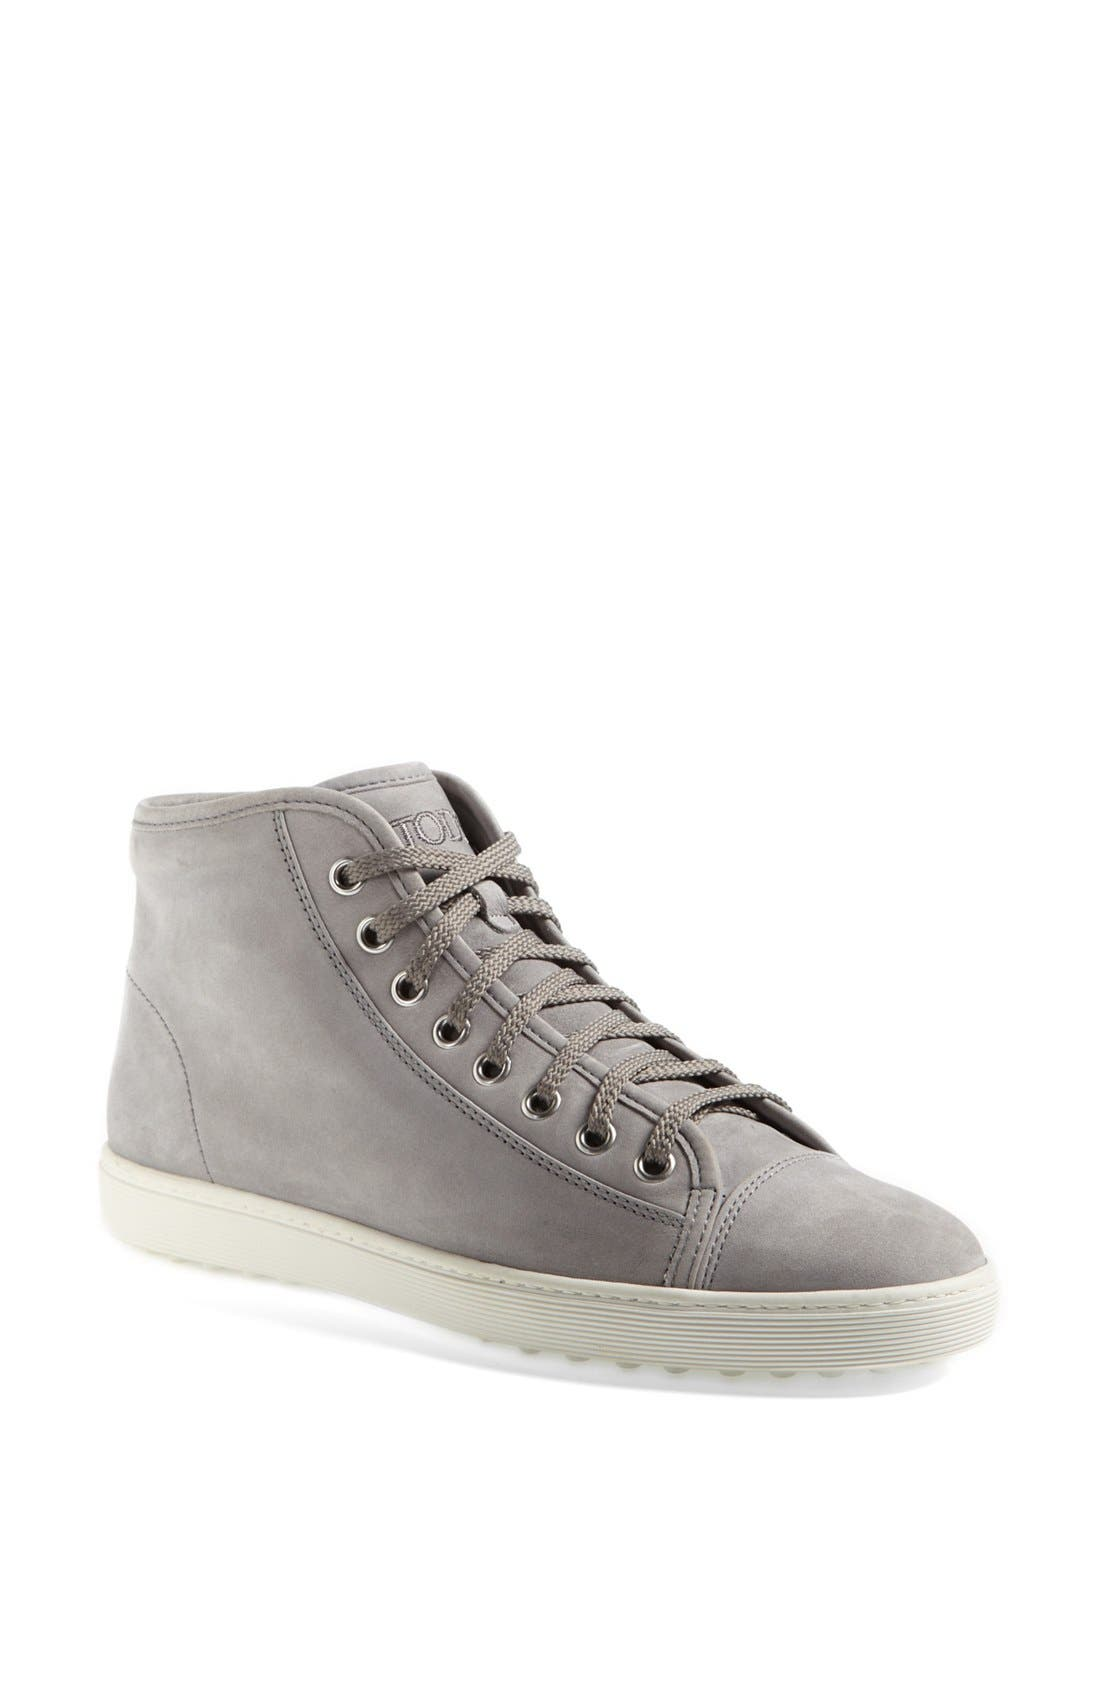 Main Image - Tod's 'Sport Cassetta' High Top Sneaker